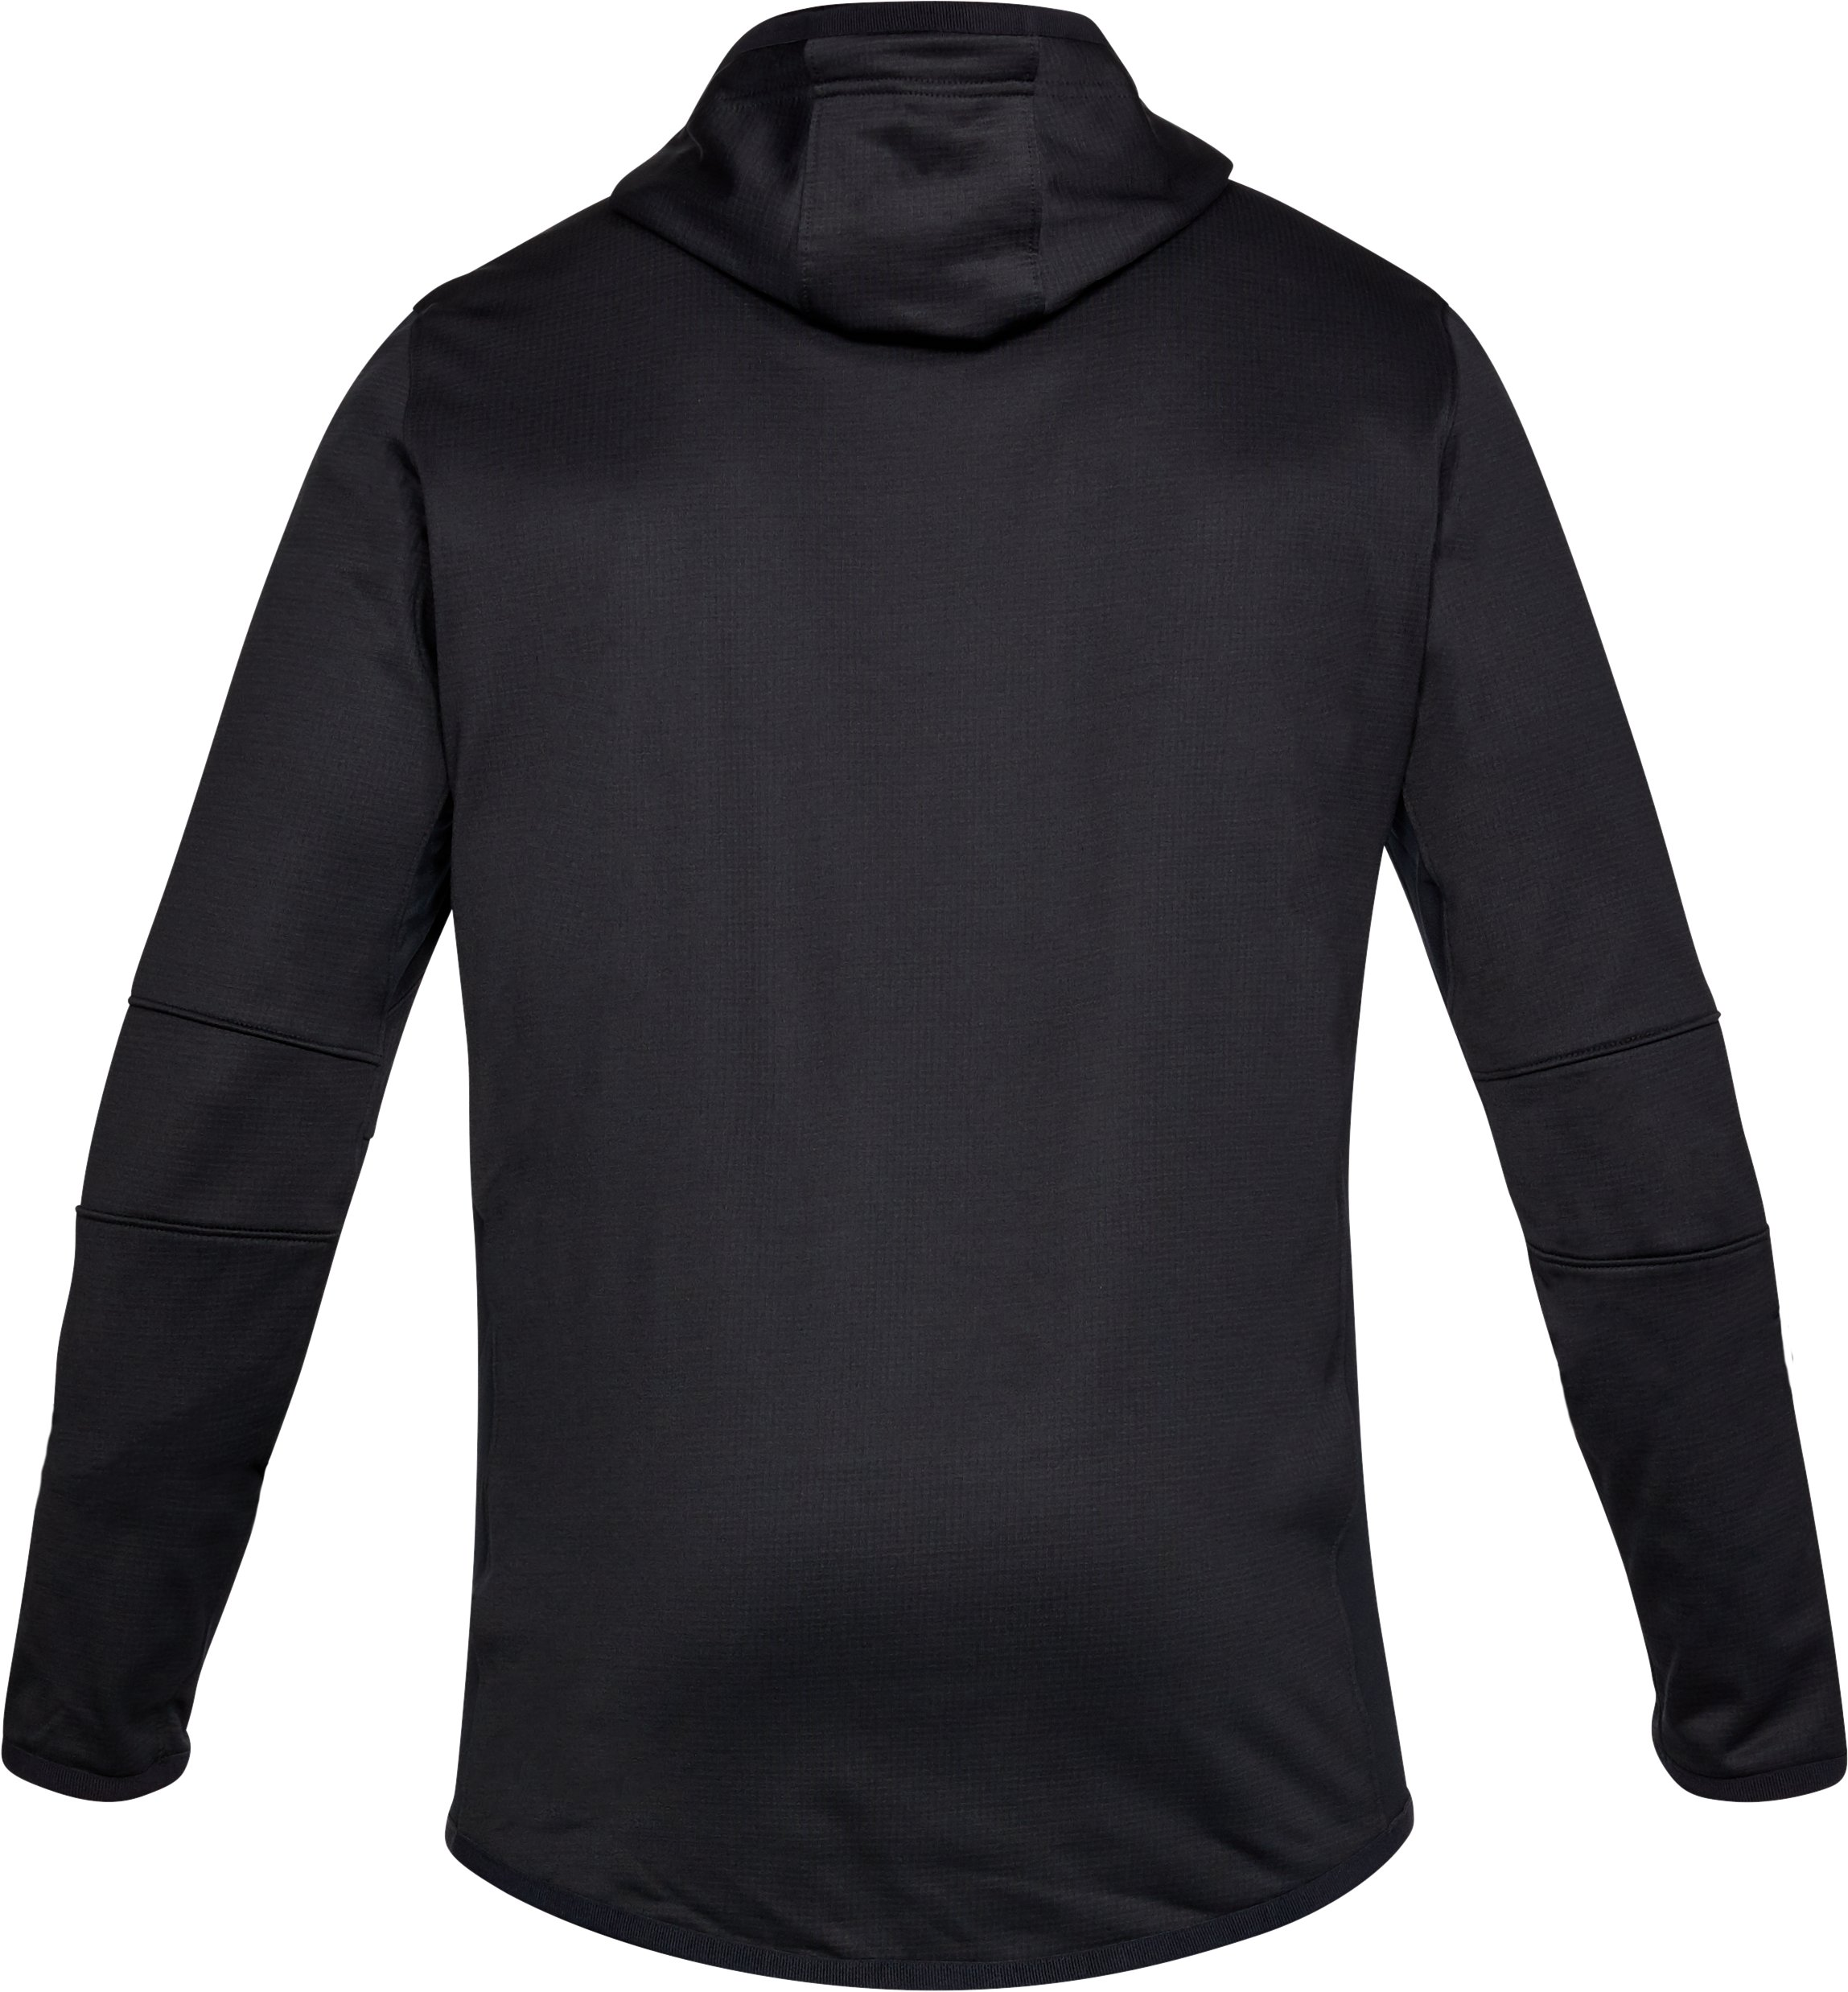 Men's ColdGear® Reactor Fleece Full Zip Hoodie, Black , undefined